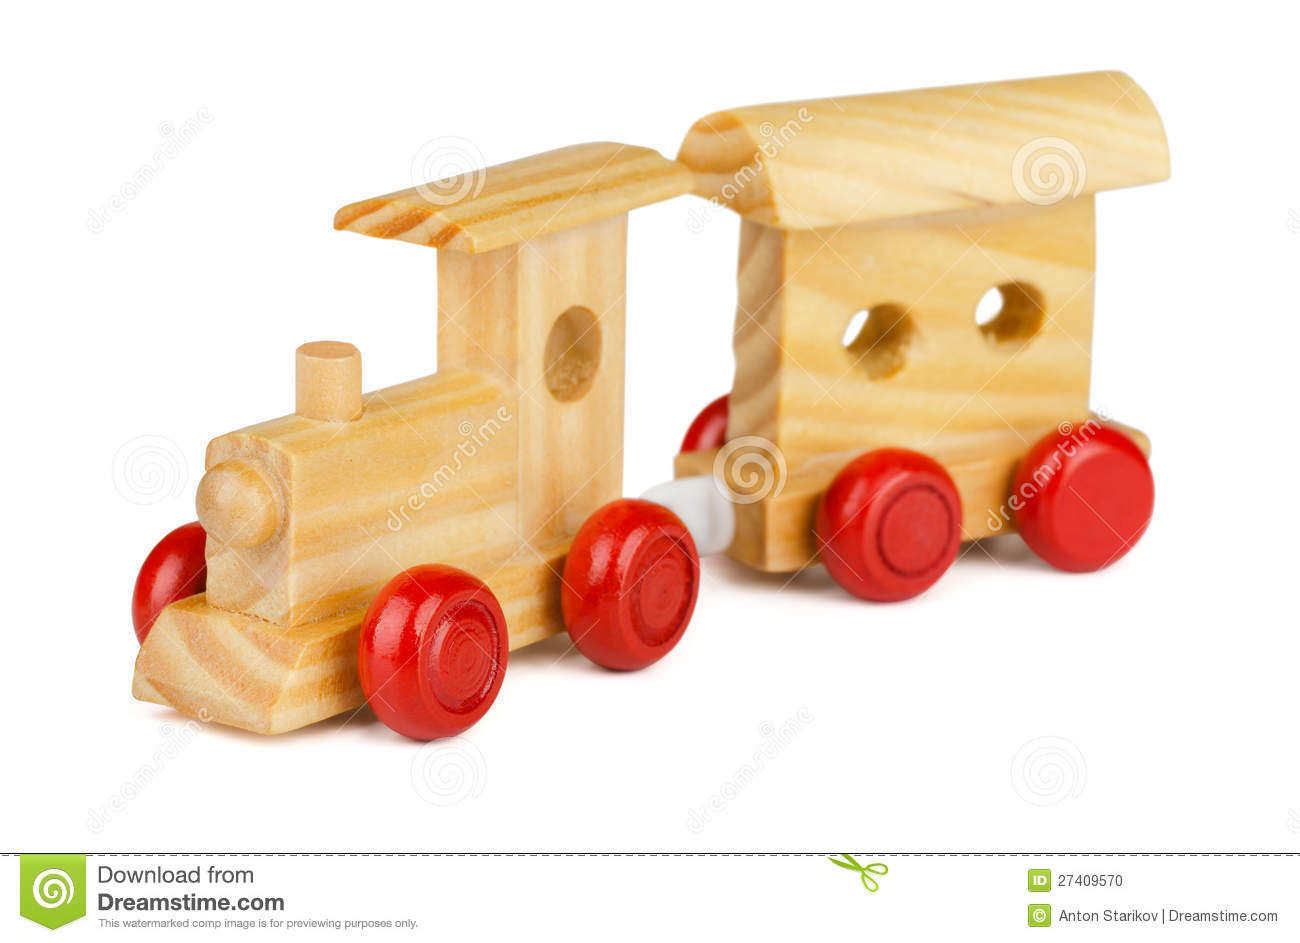 Wooden Toy Train Stock Photo - Image: 27409570